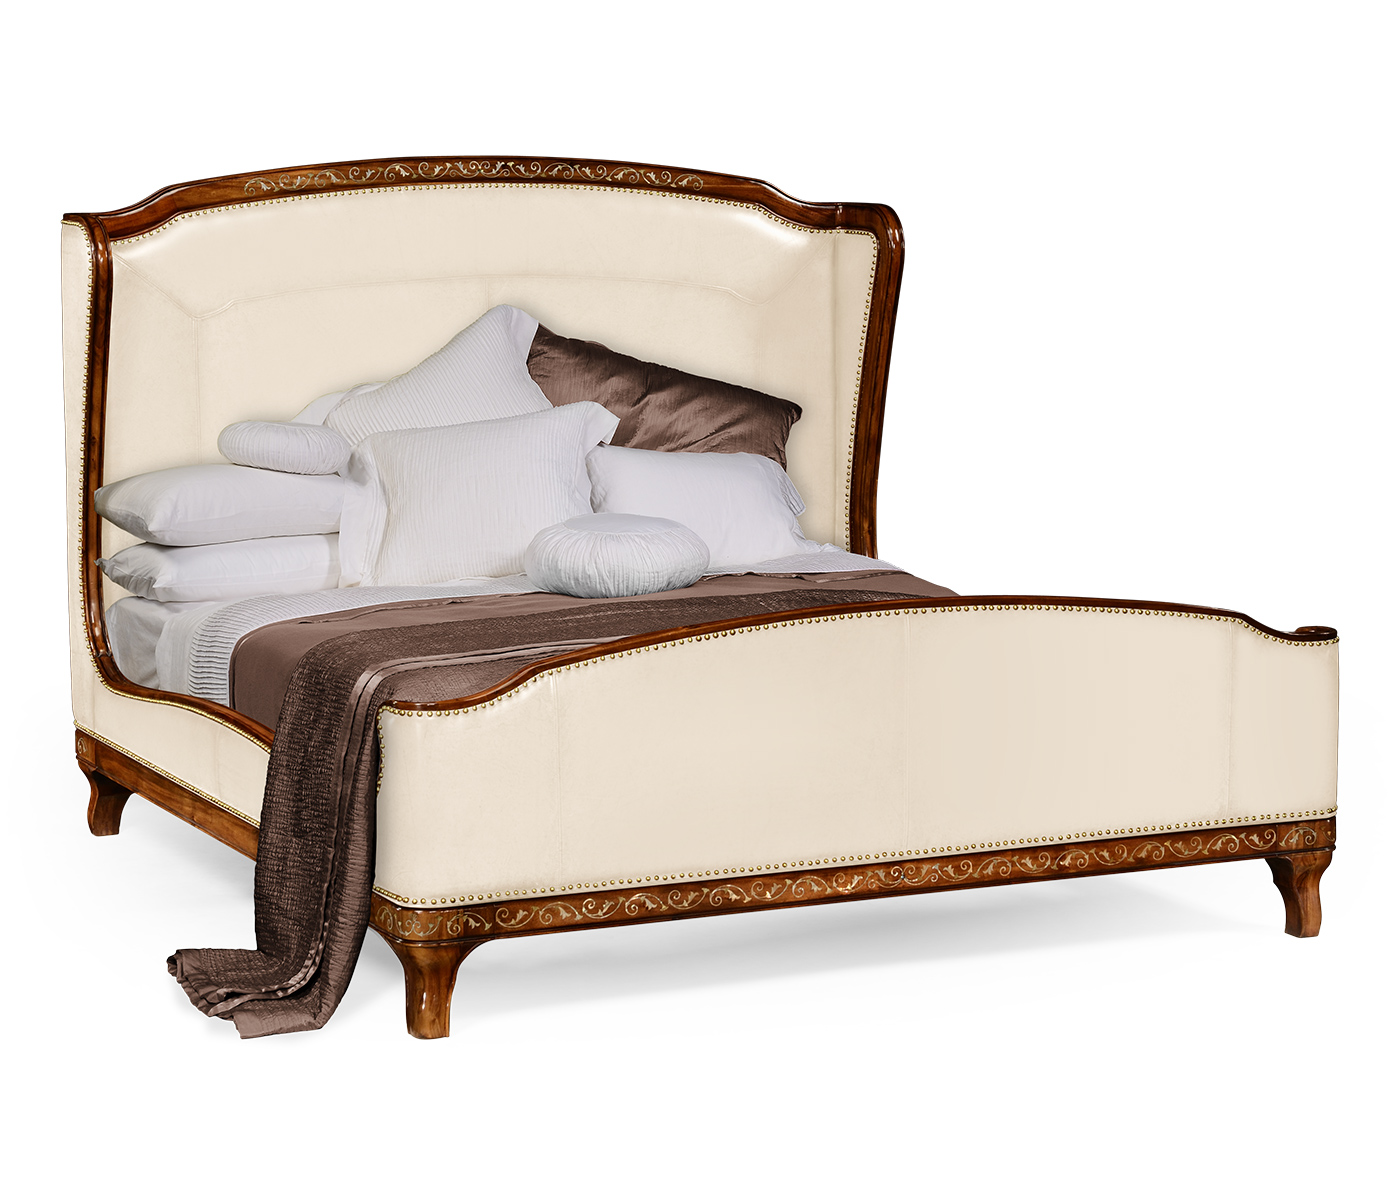 Burl And Mother Of Pearl Inlaid Louis Xv Style Cream Leather Bed Us